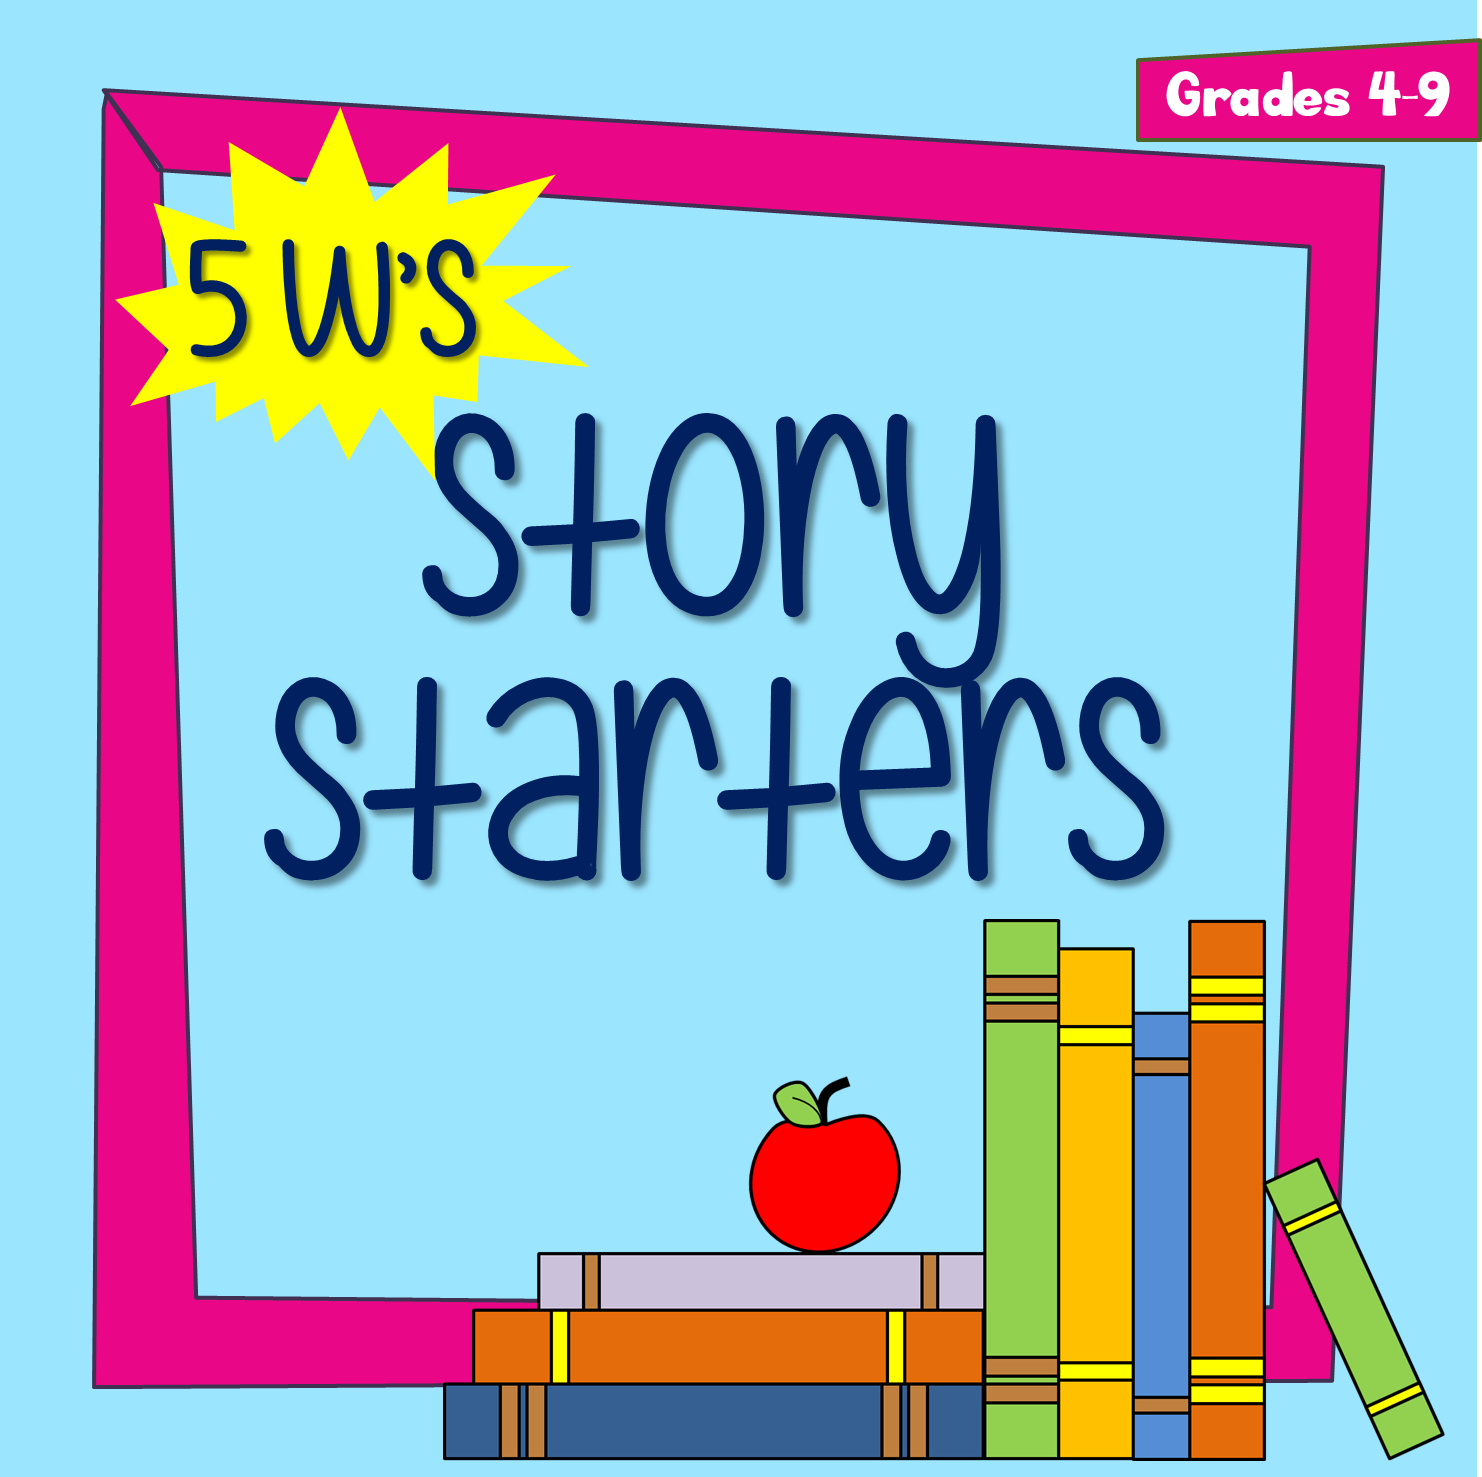 https://www.teacherspayteachers.com/Product/5-Ws-Story-Starter-Cards-1773174